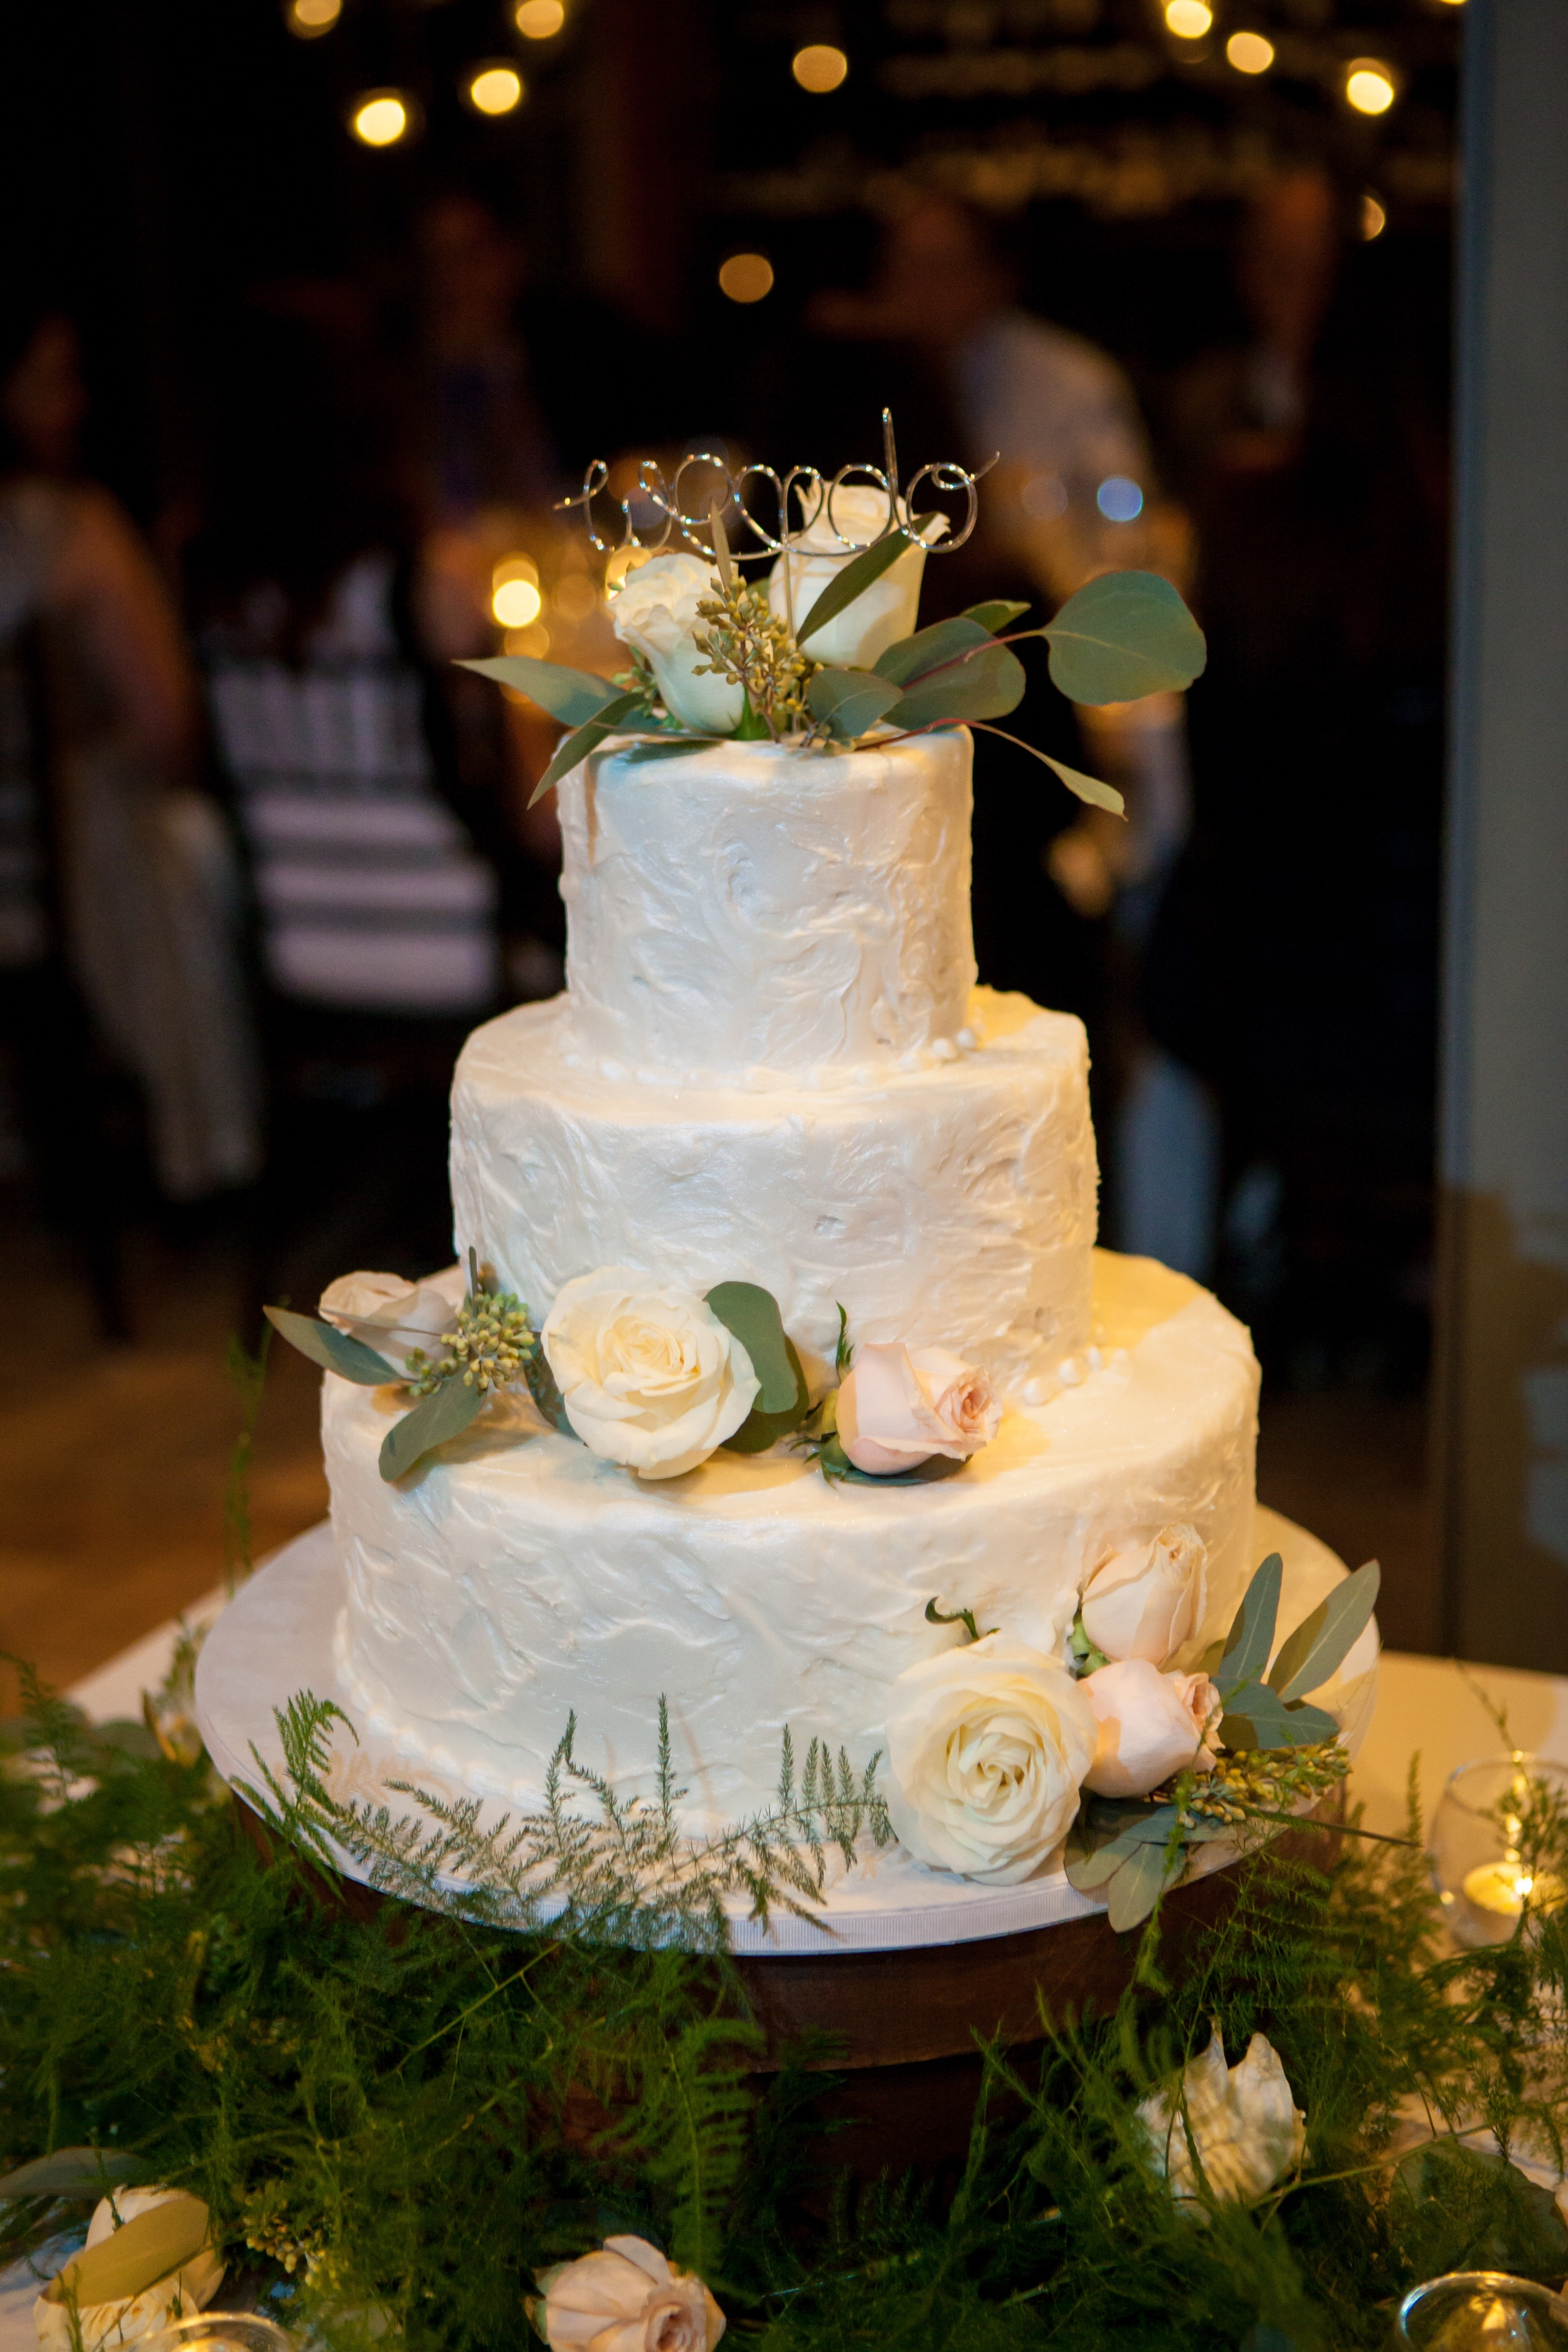 The wedding cake's textured buttercream icing was accented with fresh flowers and a wire topper